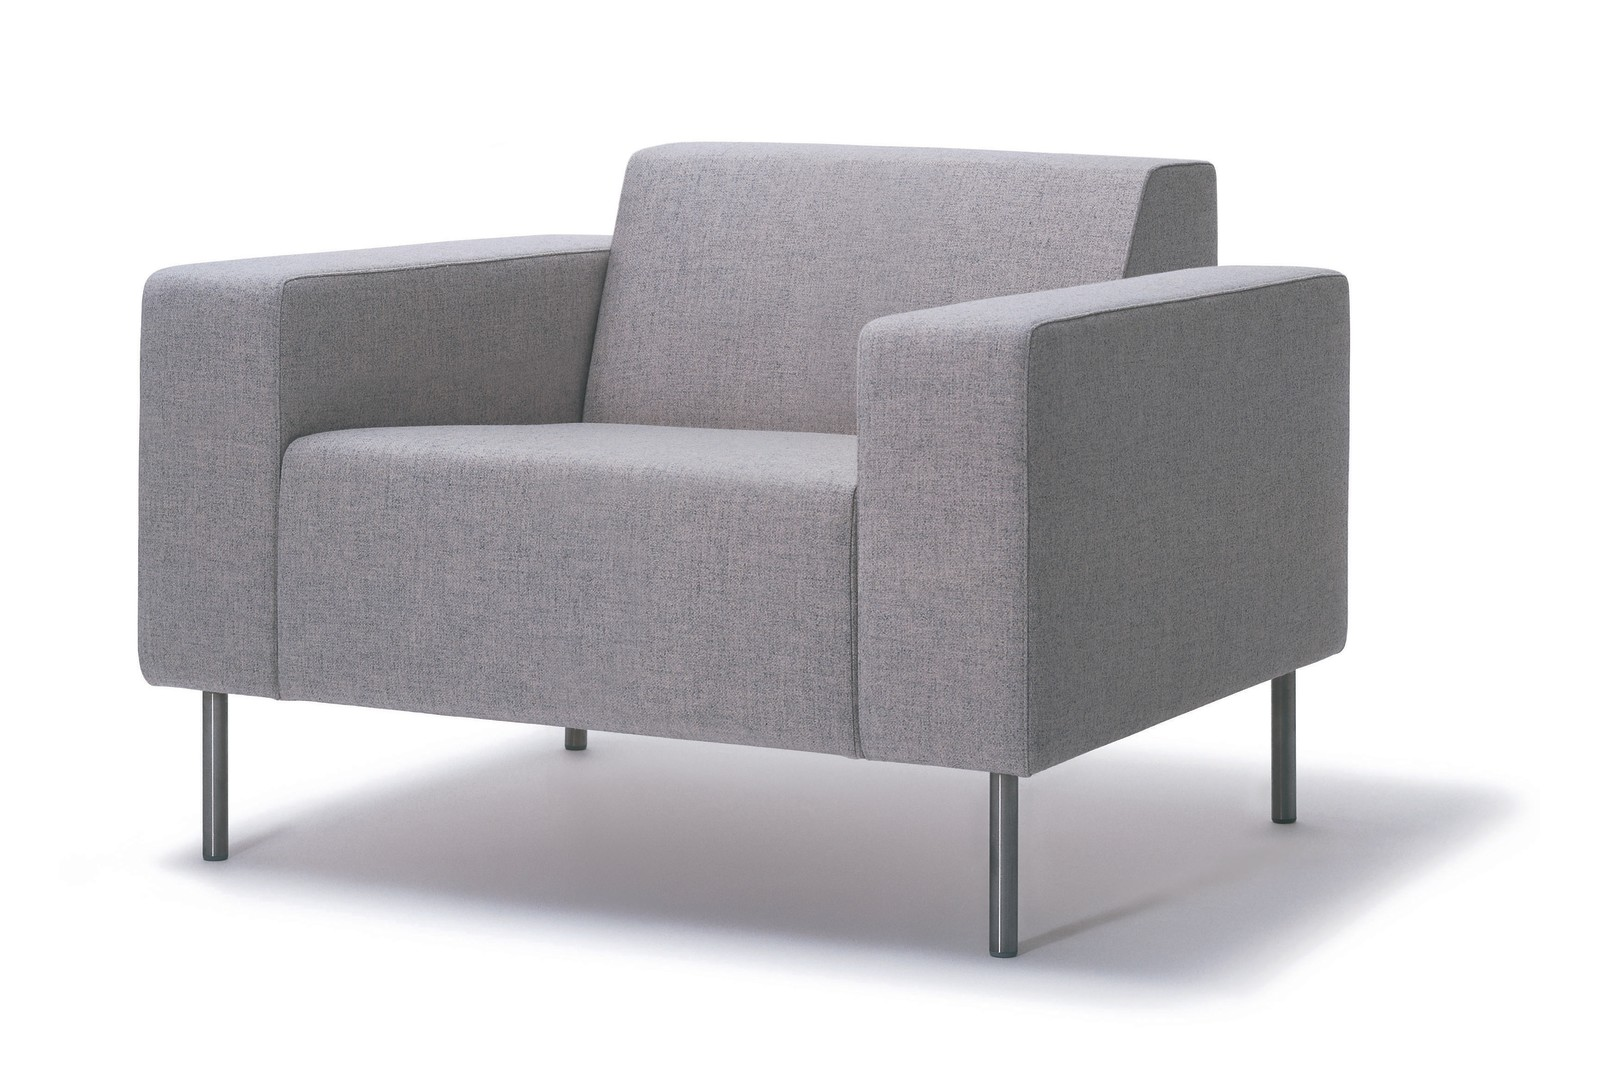 HM18D2 Origin Armchair Kvadrat Hallingdal 65 Brushed Stainless Steel